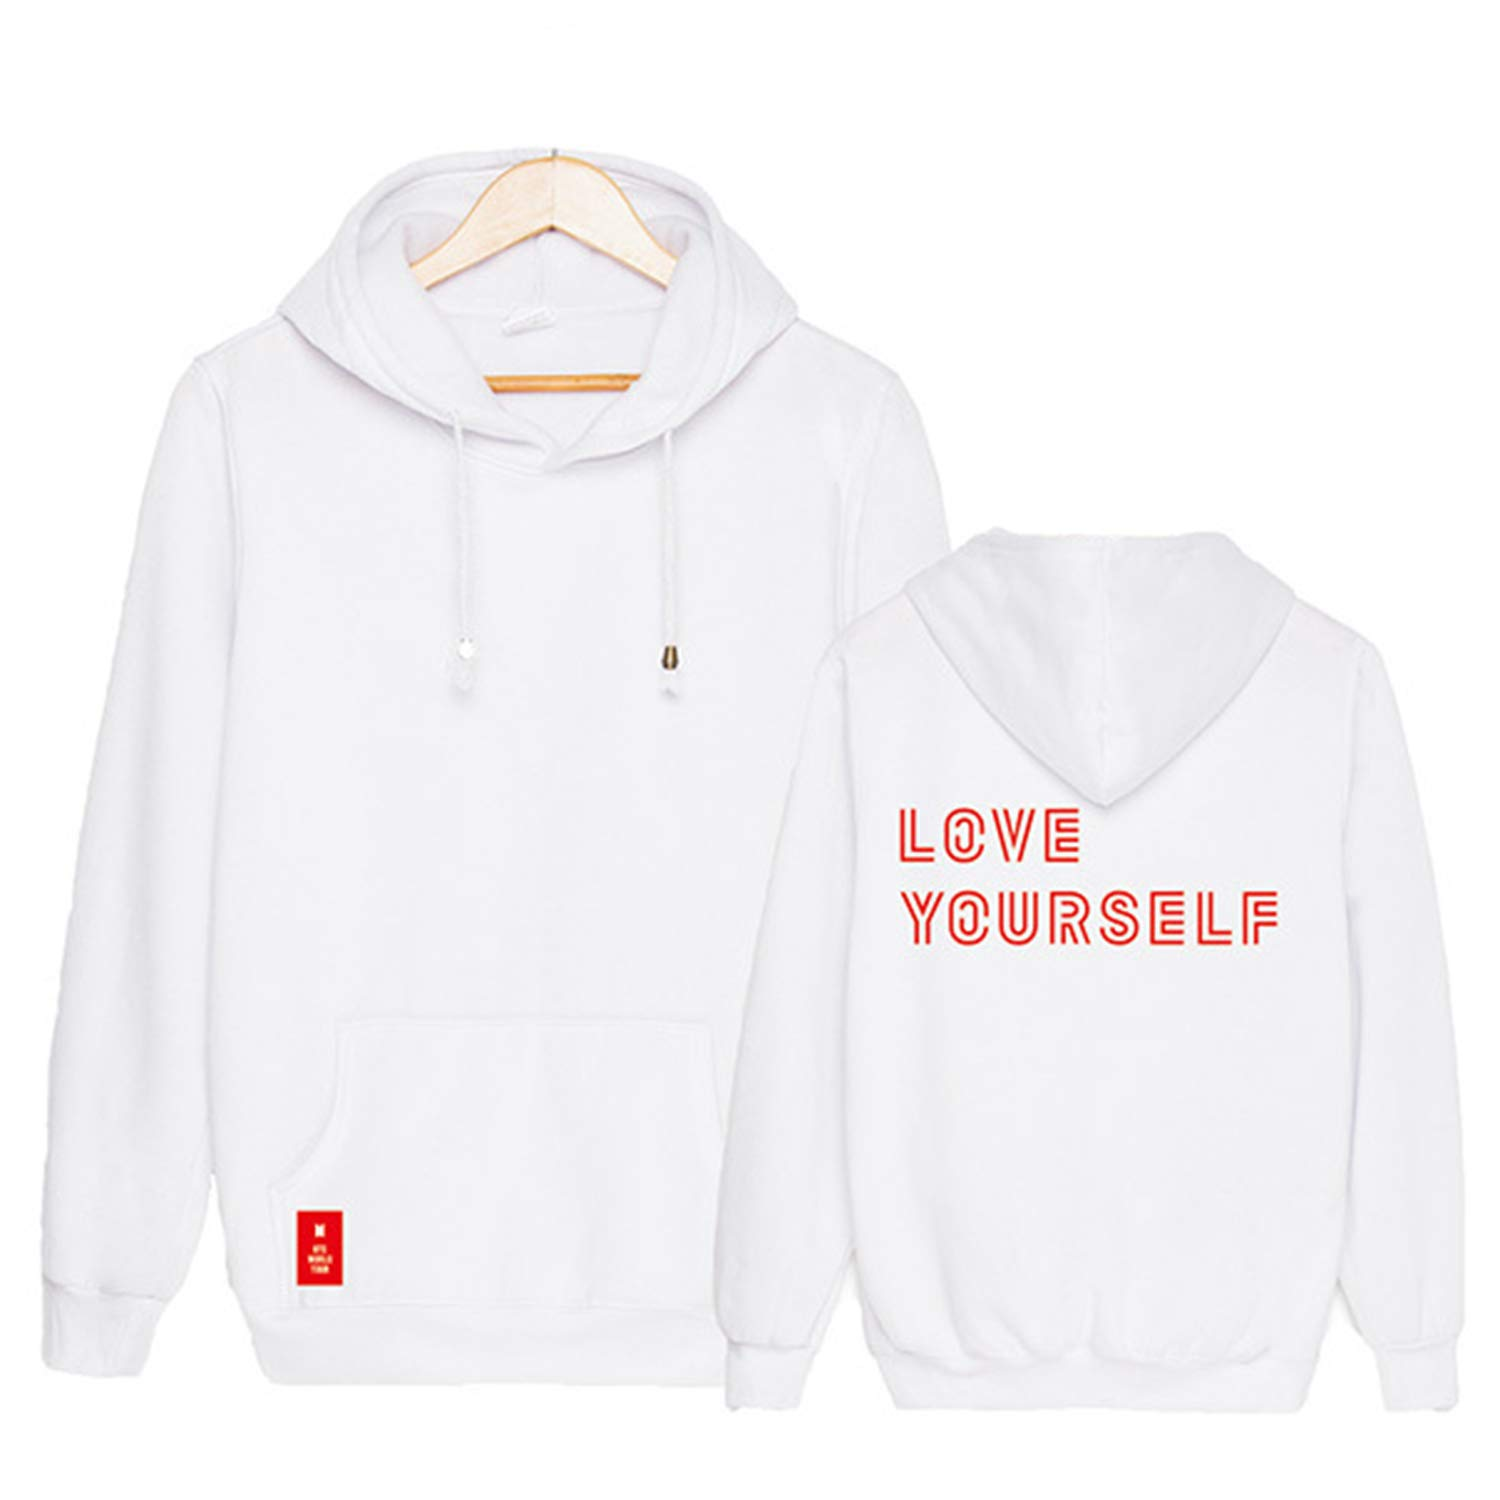 Qaedtls Kpop BTS World Tour Love Yourself Sweater Jungkook Suga Jimin V Hoodie Jacket